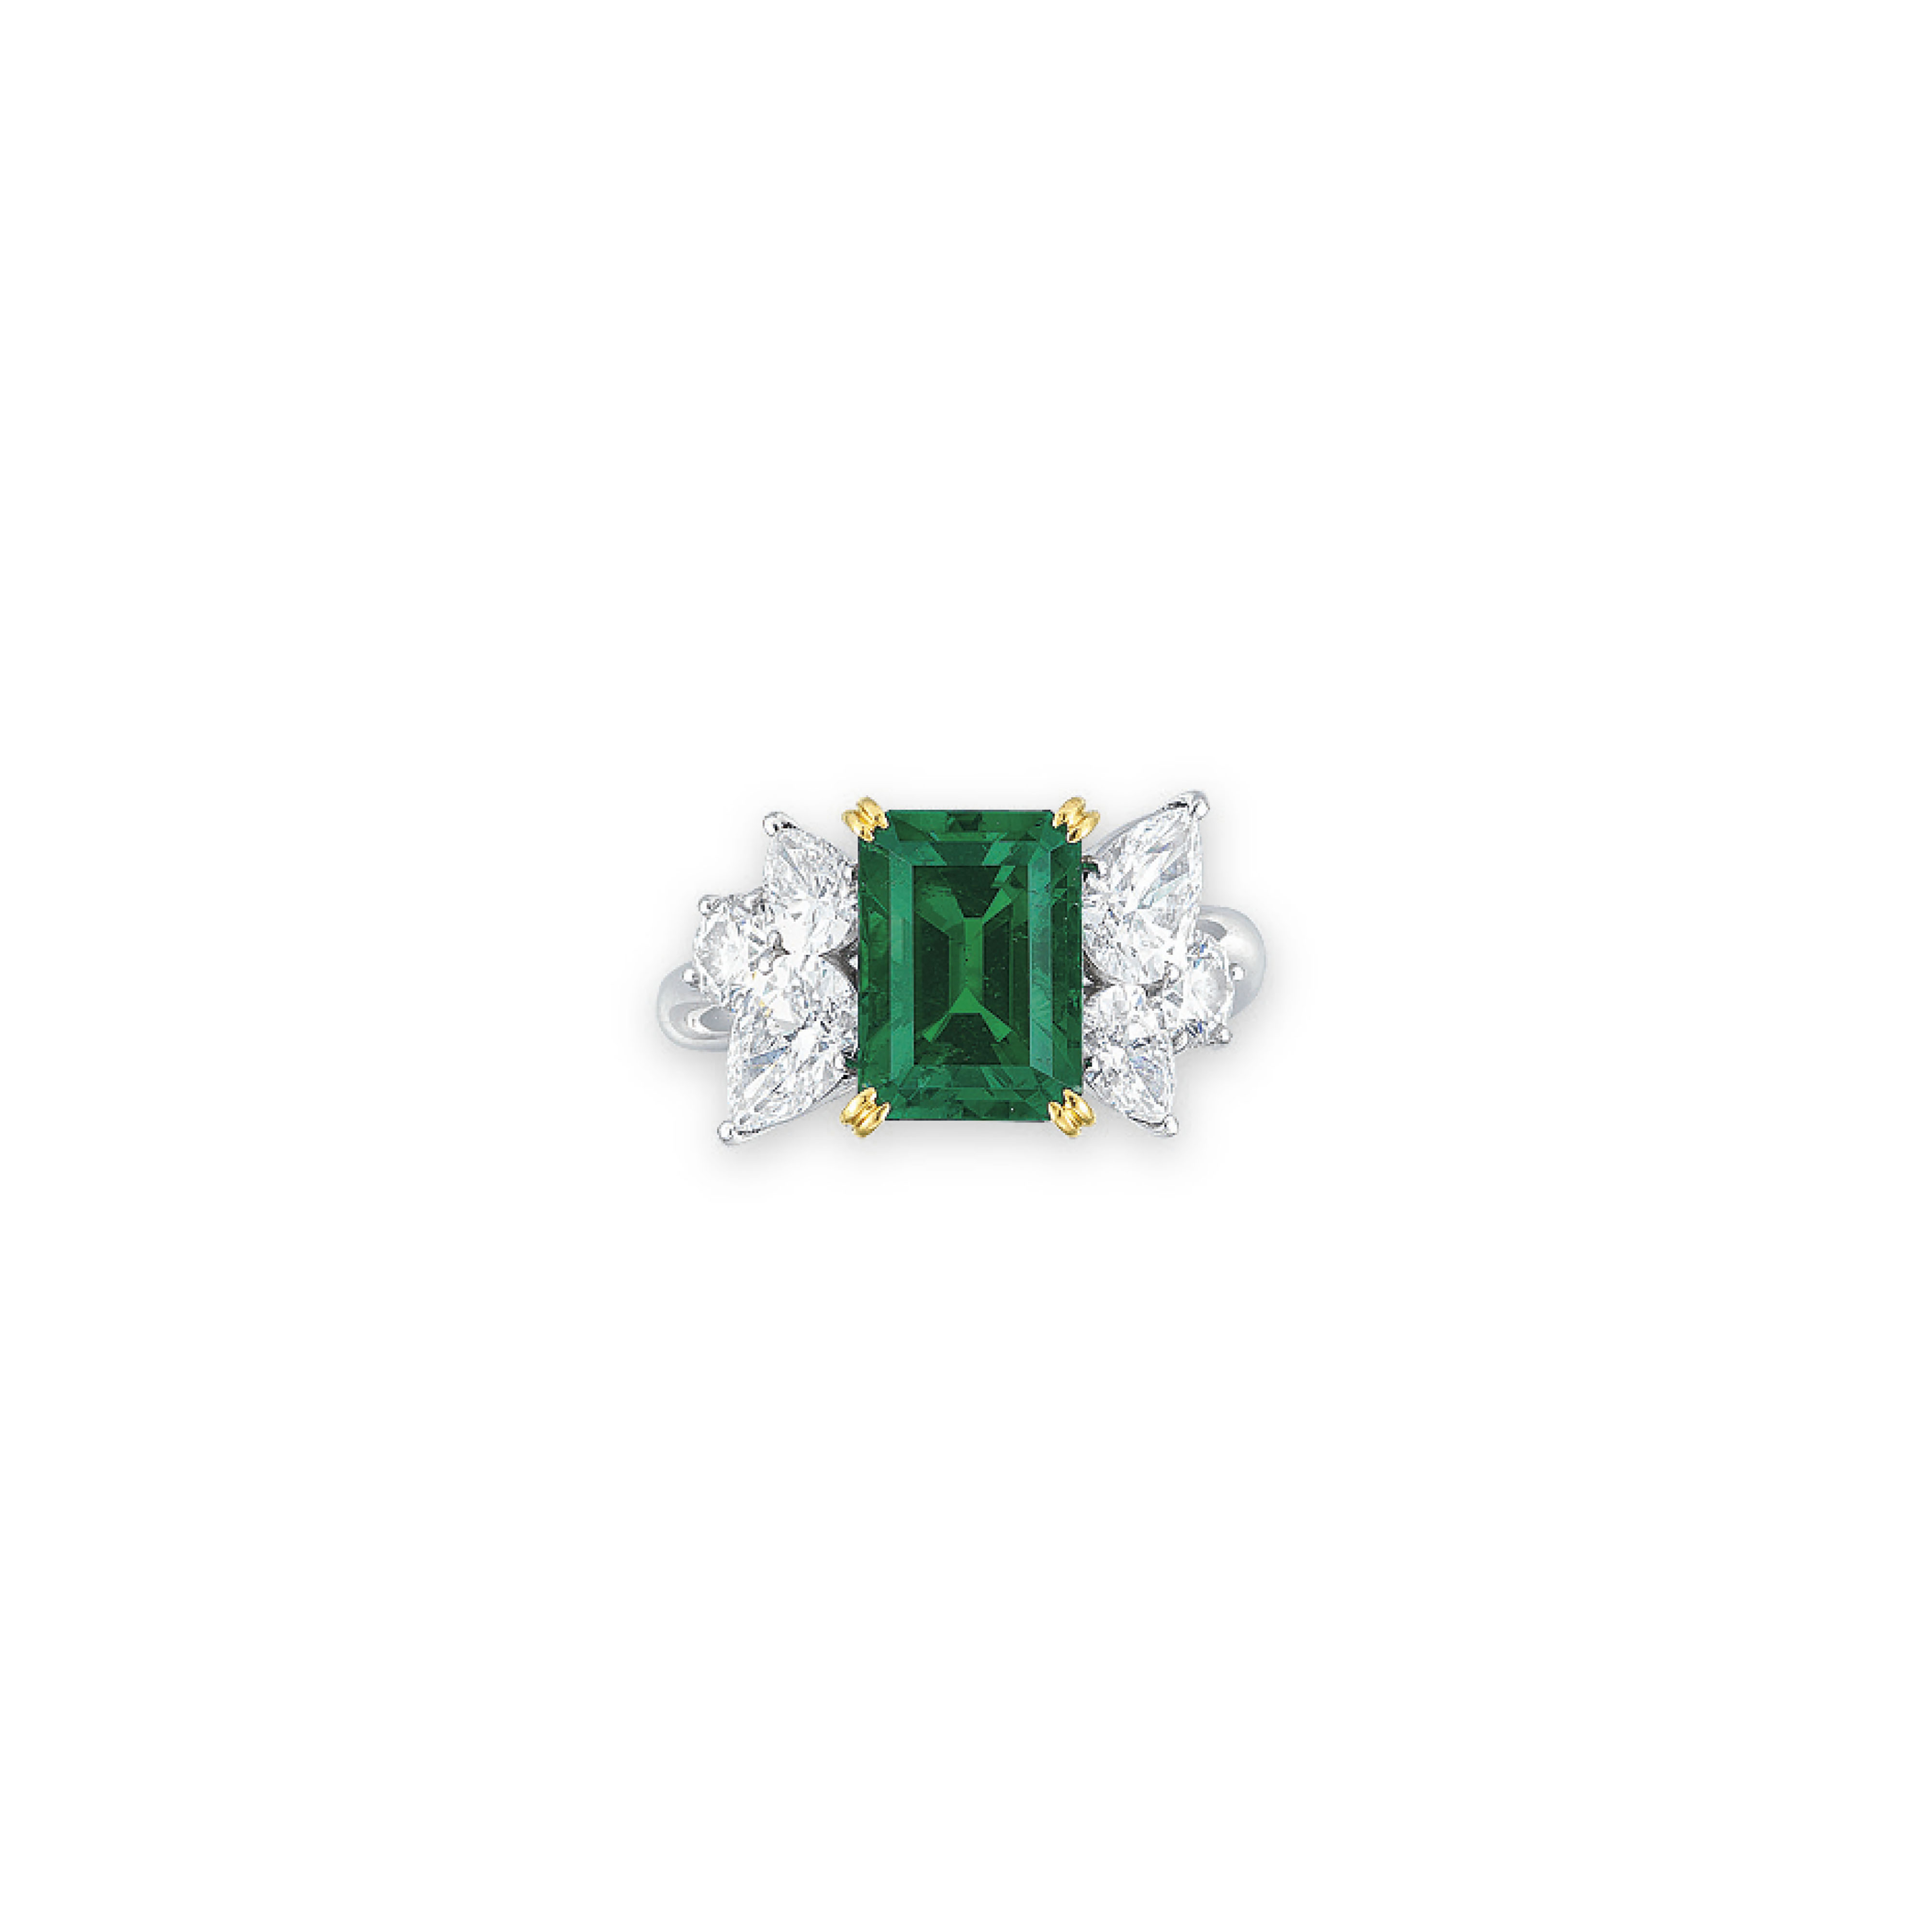 AN EMERALD AND DIAMOND RING, BY MIKIMOTO